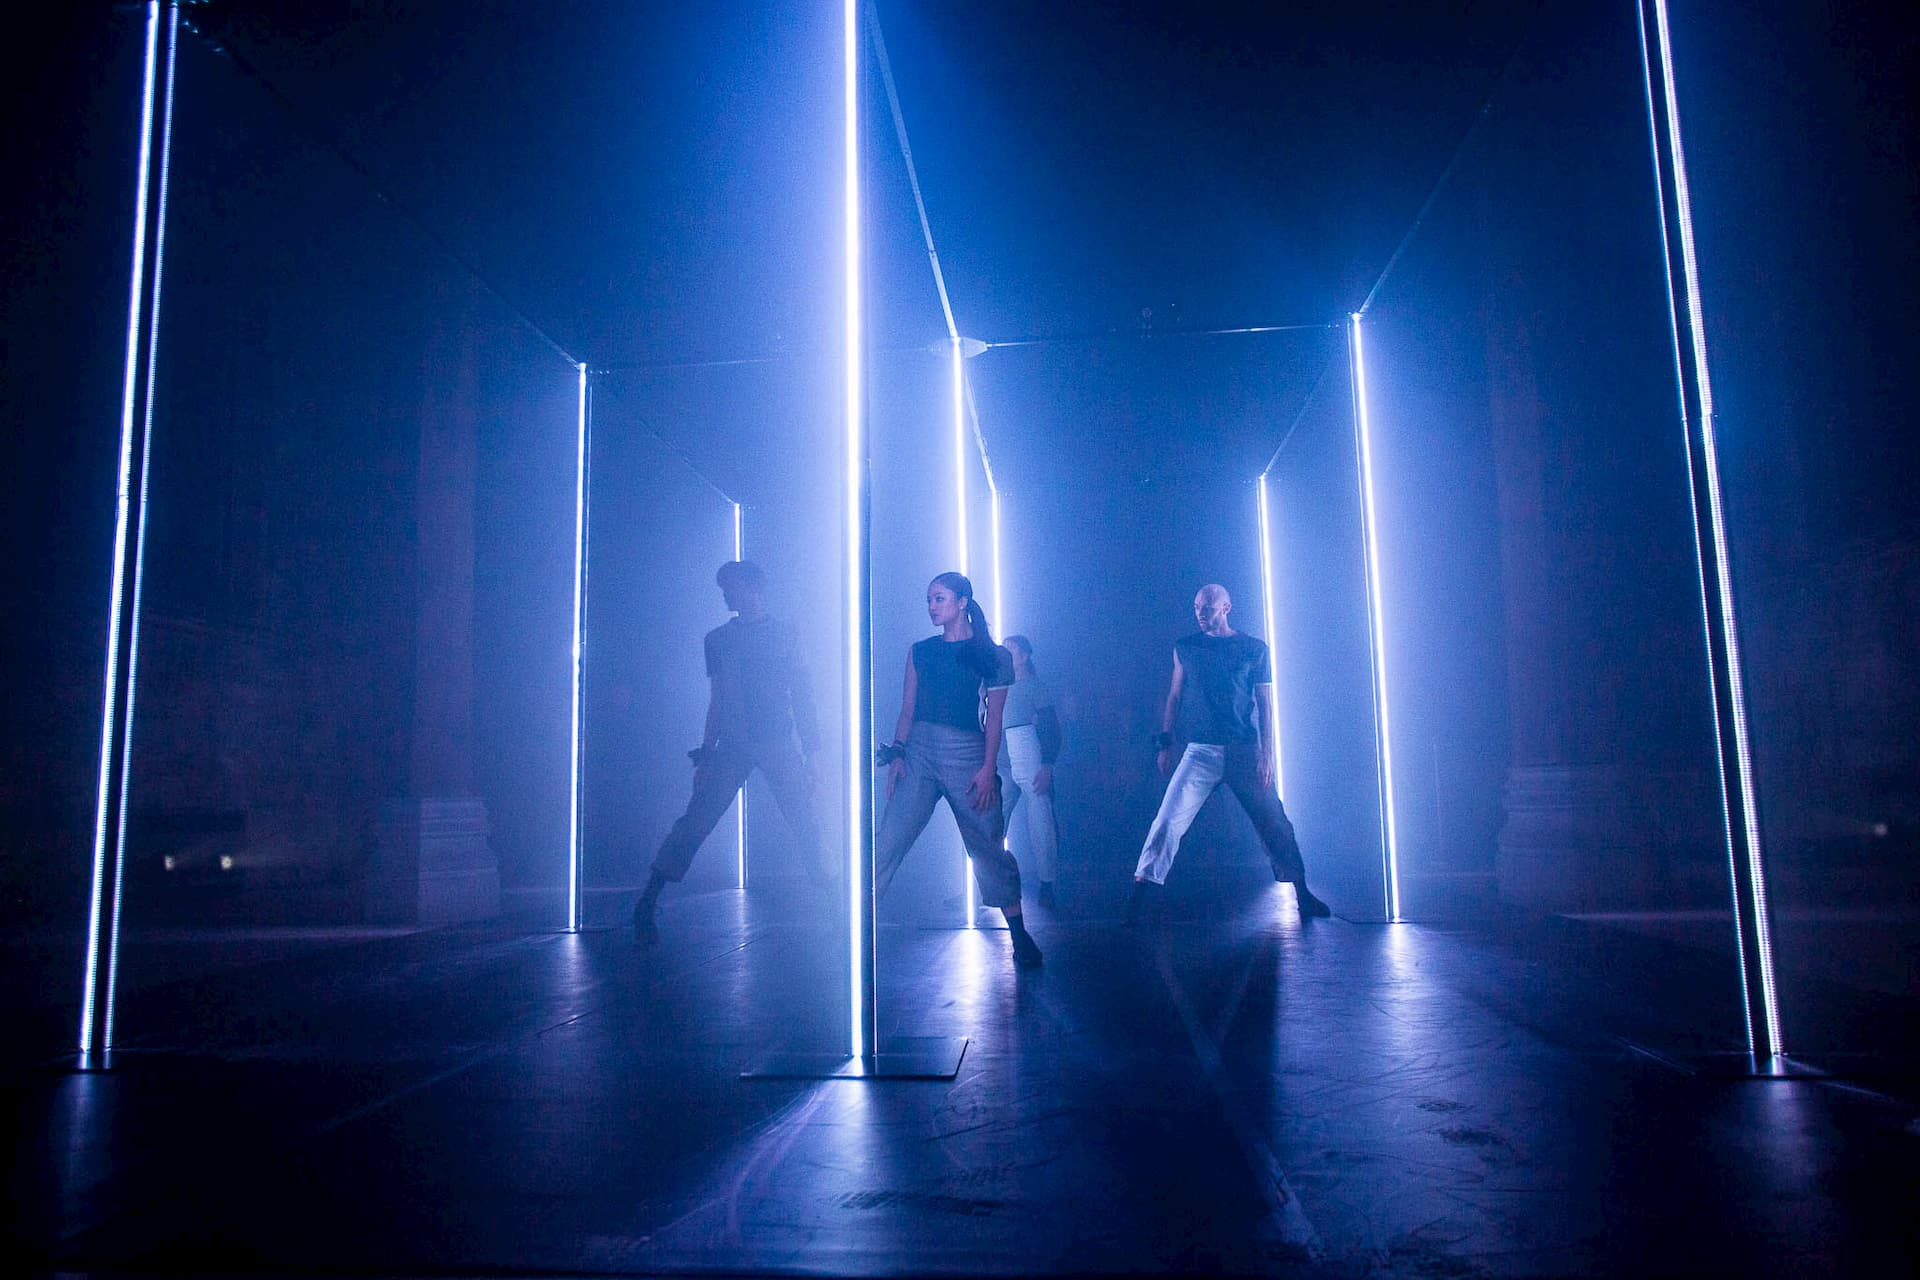 Alexander Whitley Dance Company - Strange Stranger world premiere at York Guildhall © York Mediale